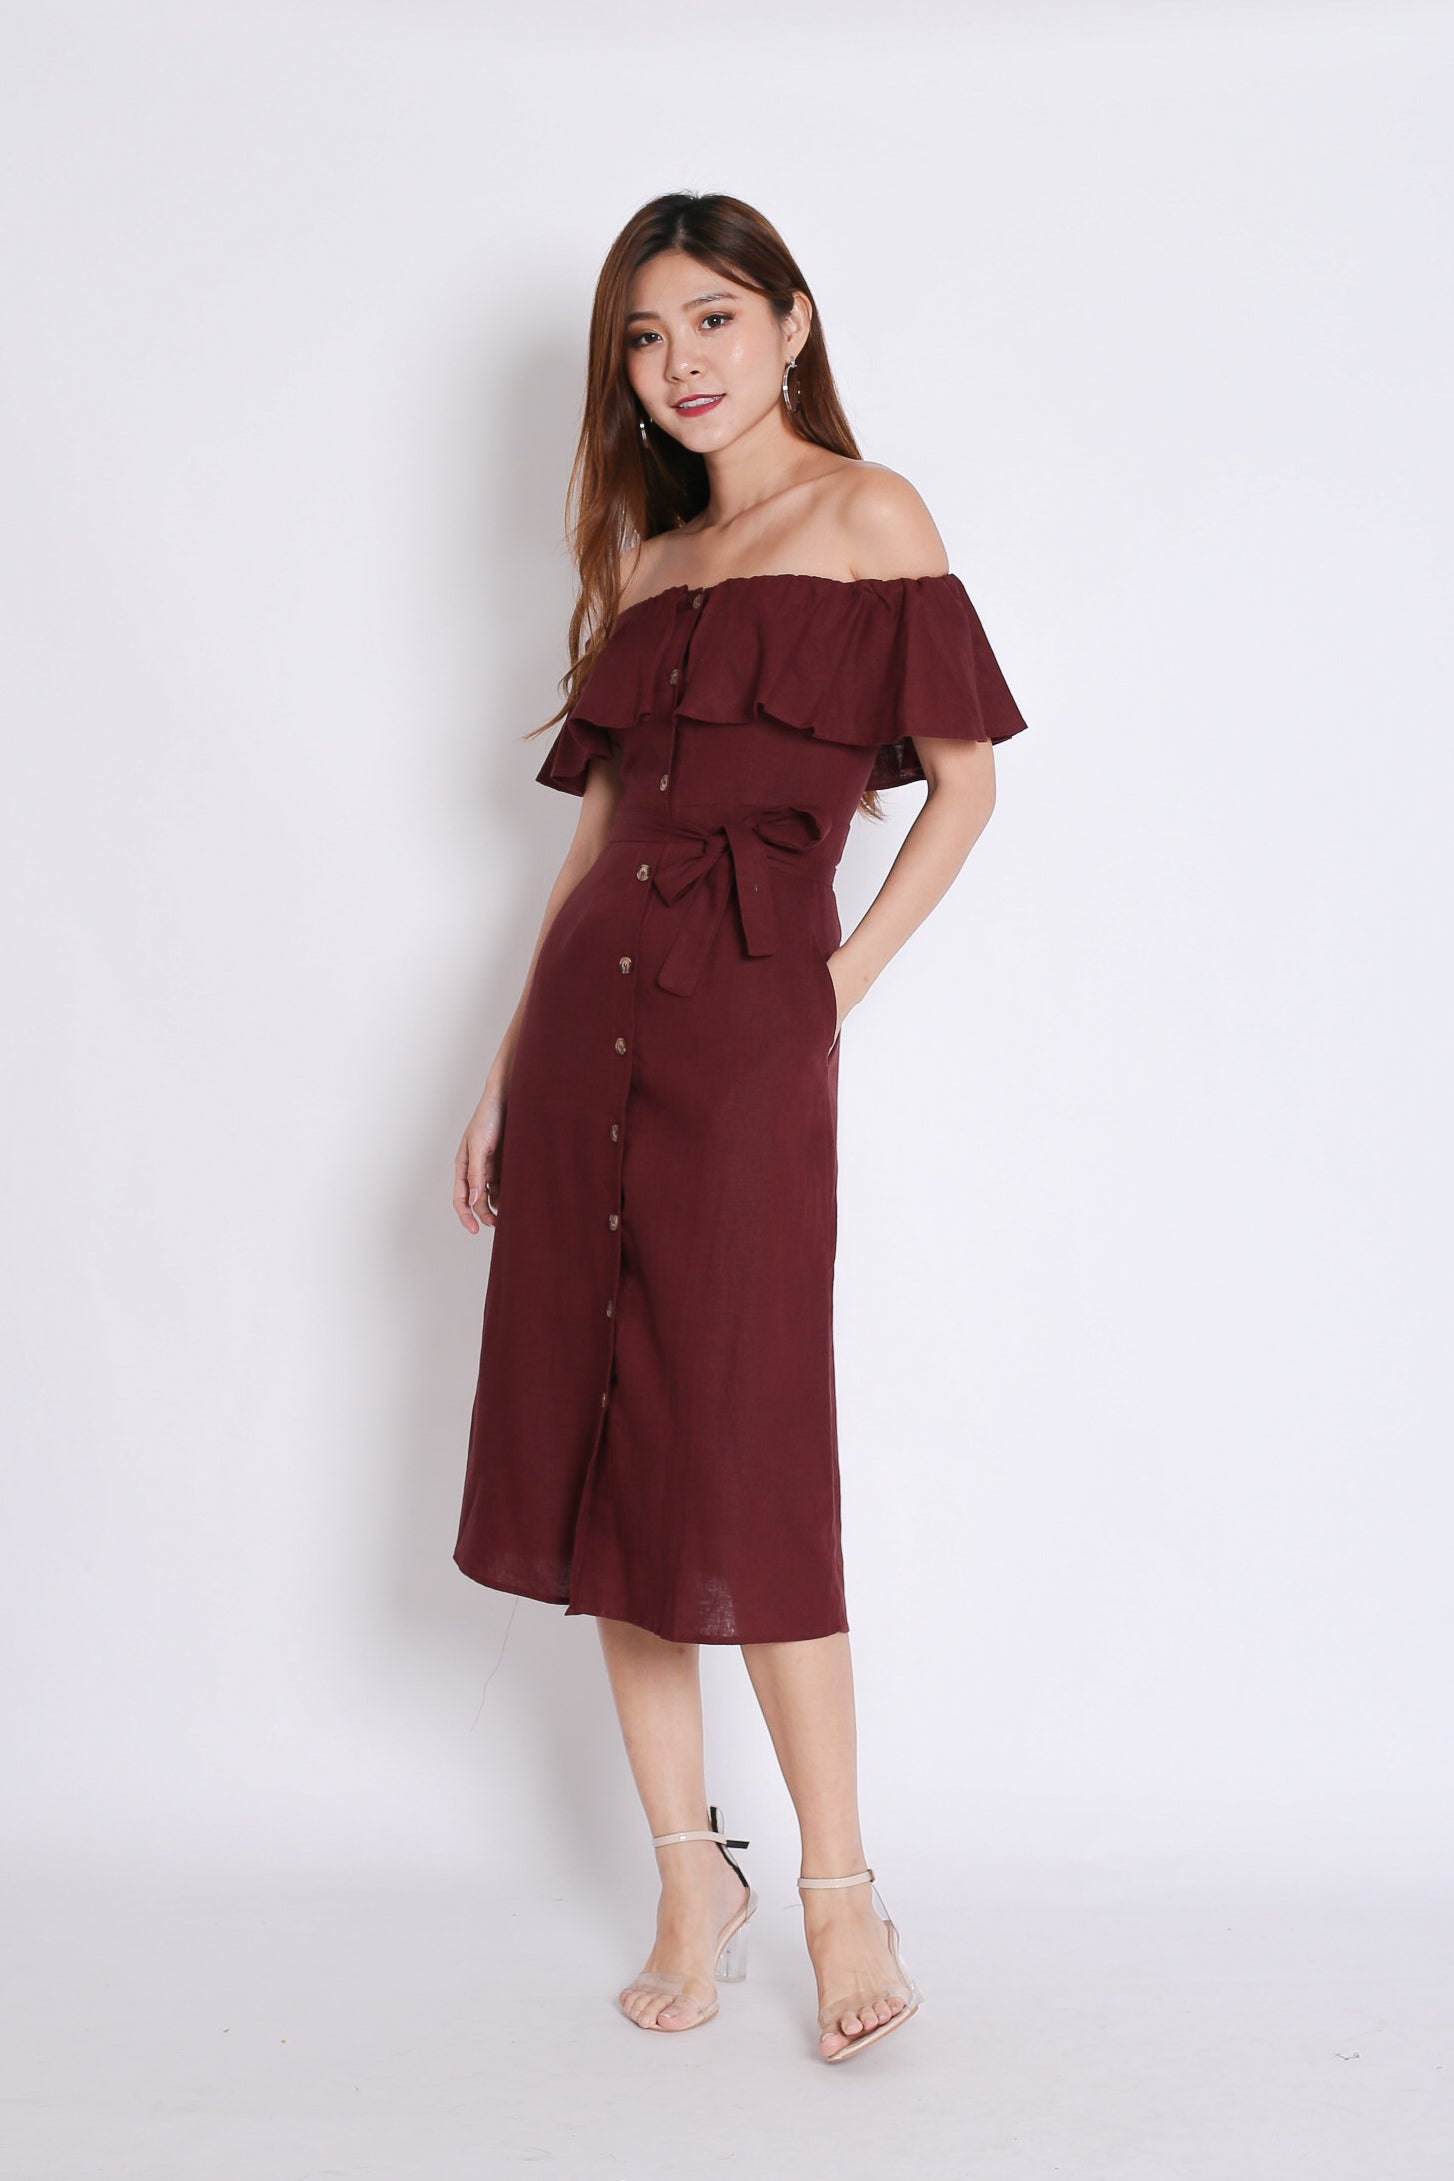 0f2166656 Buy Linen Casual Dresses Online at Overstock | Our Best .